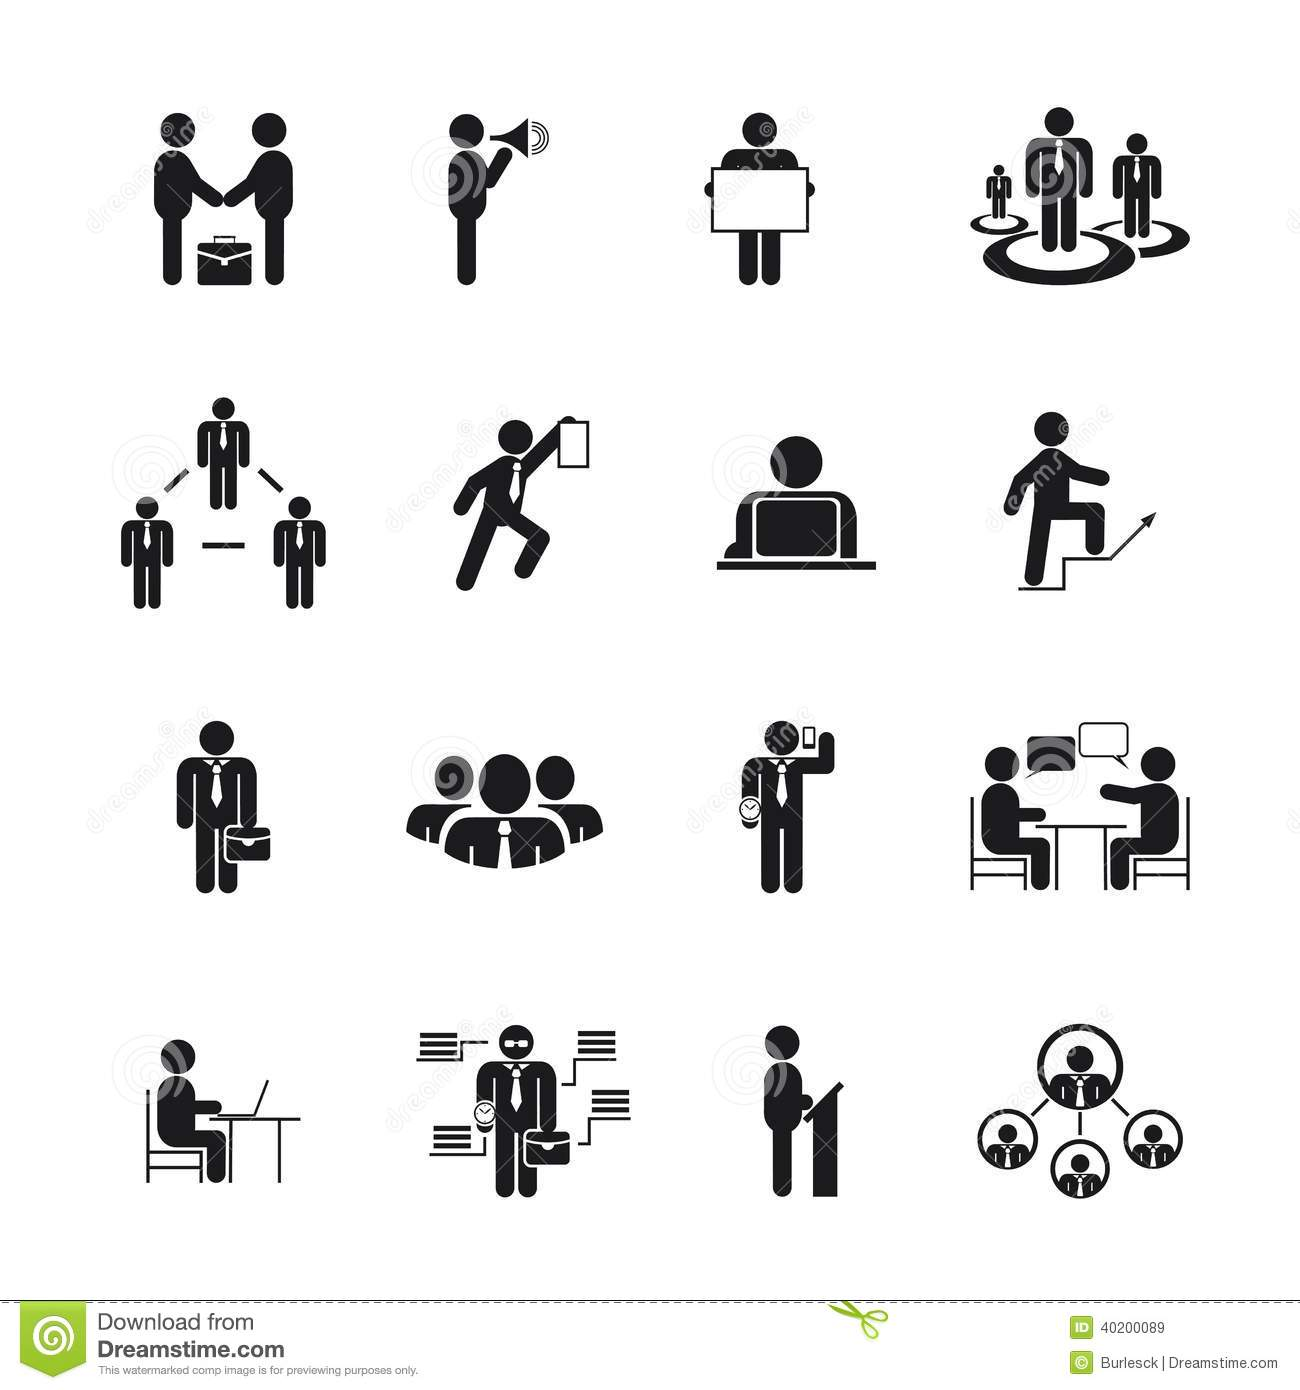 Business People Icons in different poses, vector black silhouettes